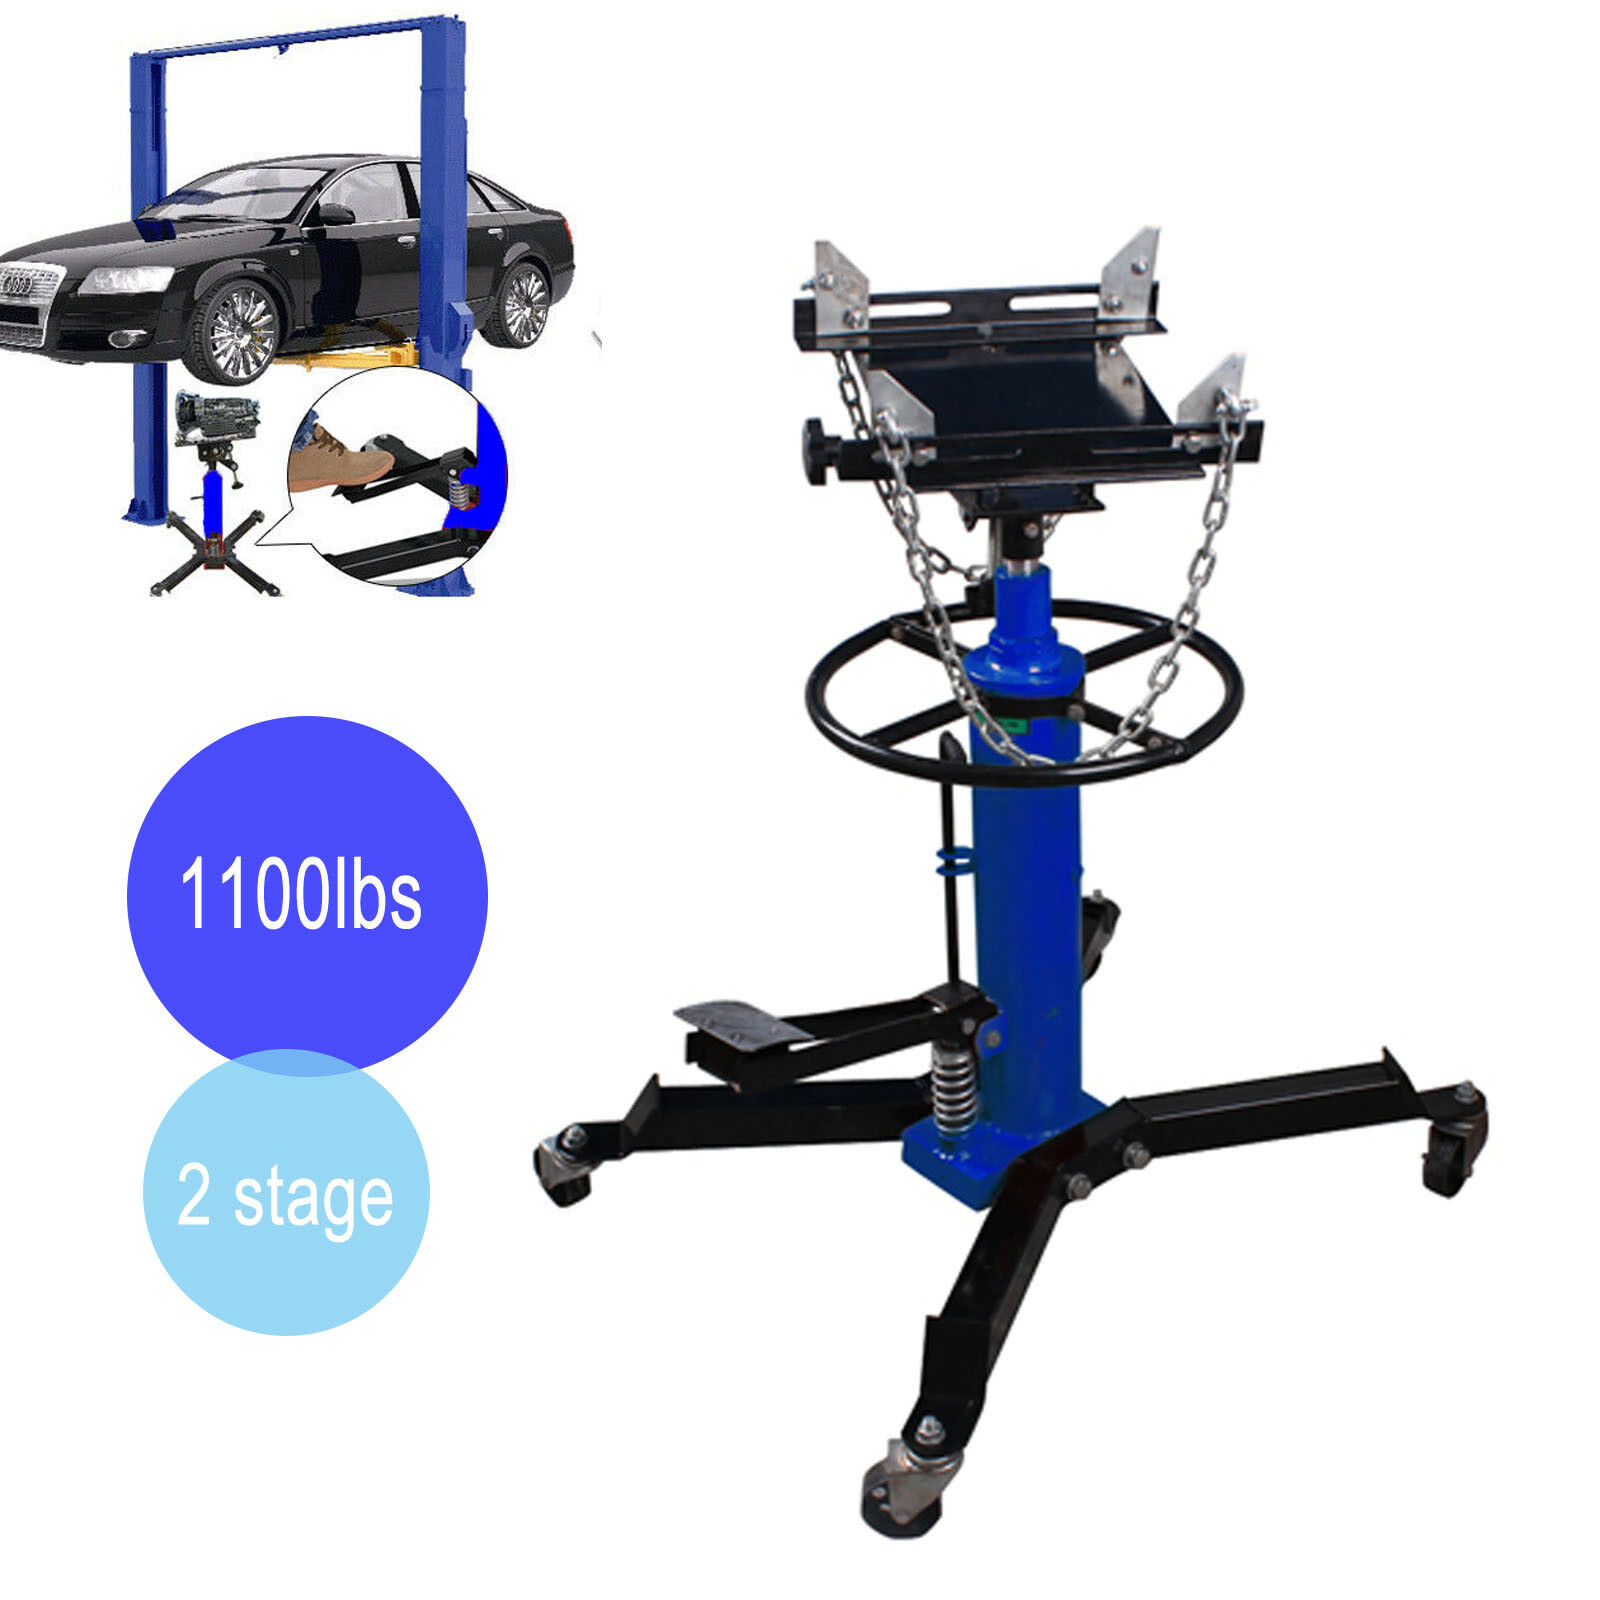 1100 Lbs Adjustable Height Hydraulic Telescopic Transmission Jack 2 Stage Auto Shop Car Lift